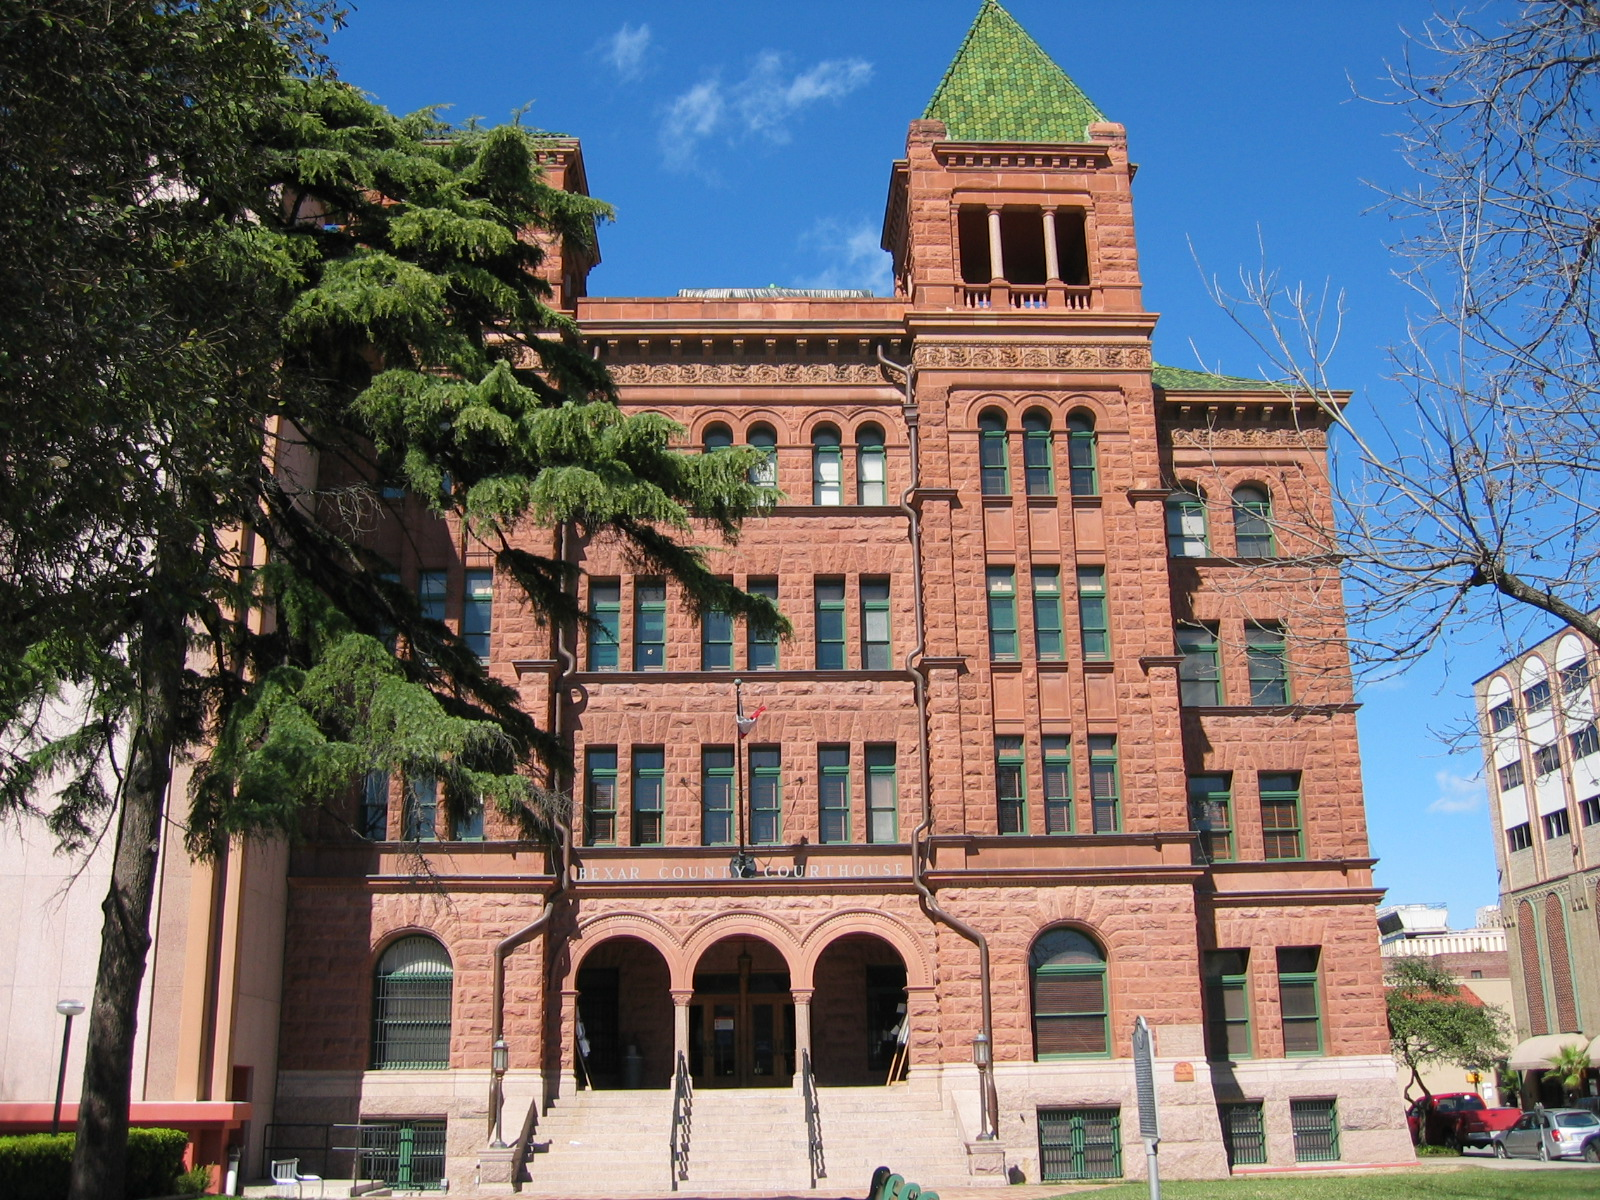 Bexar County Courthouse, Texas | Texas County Courthouses